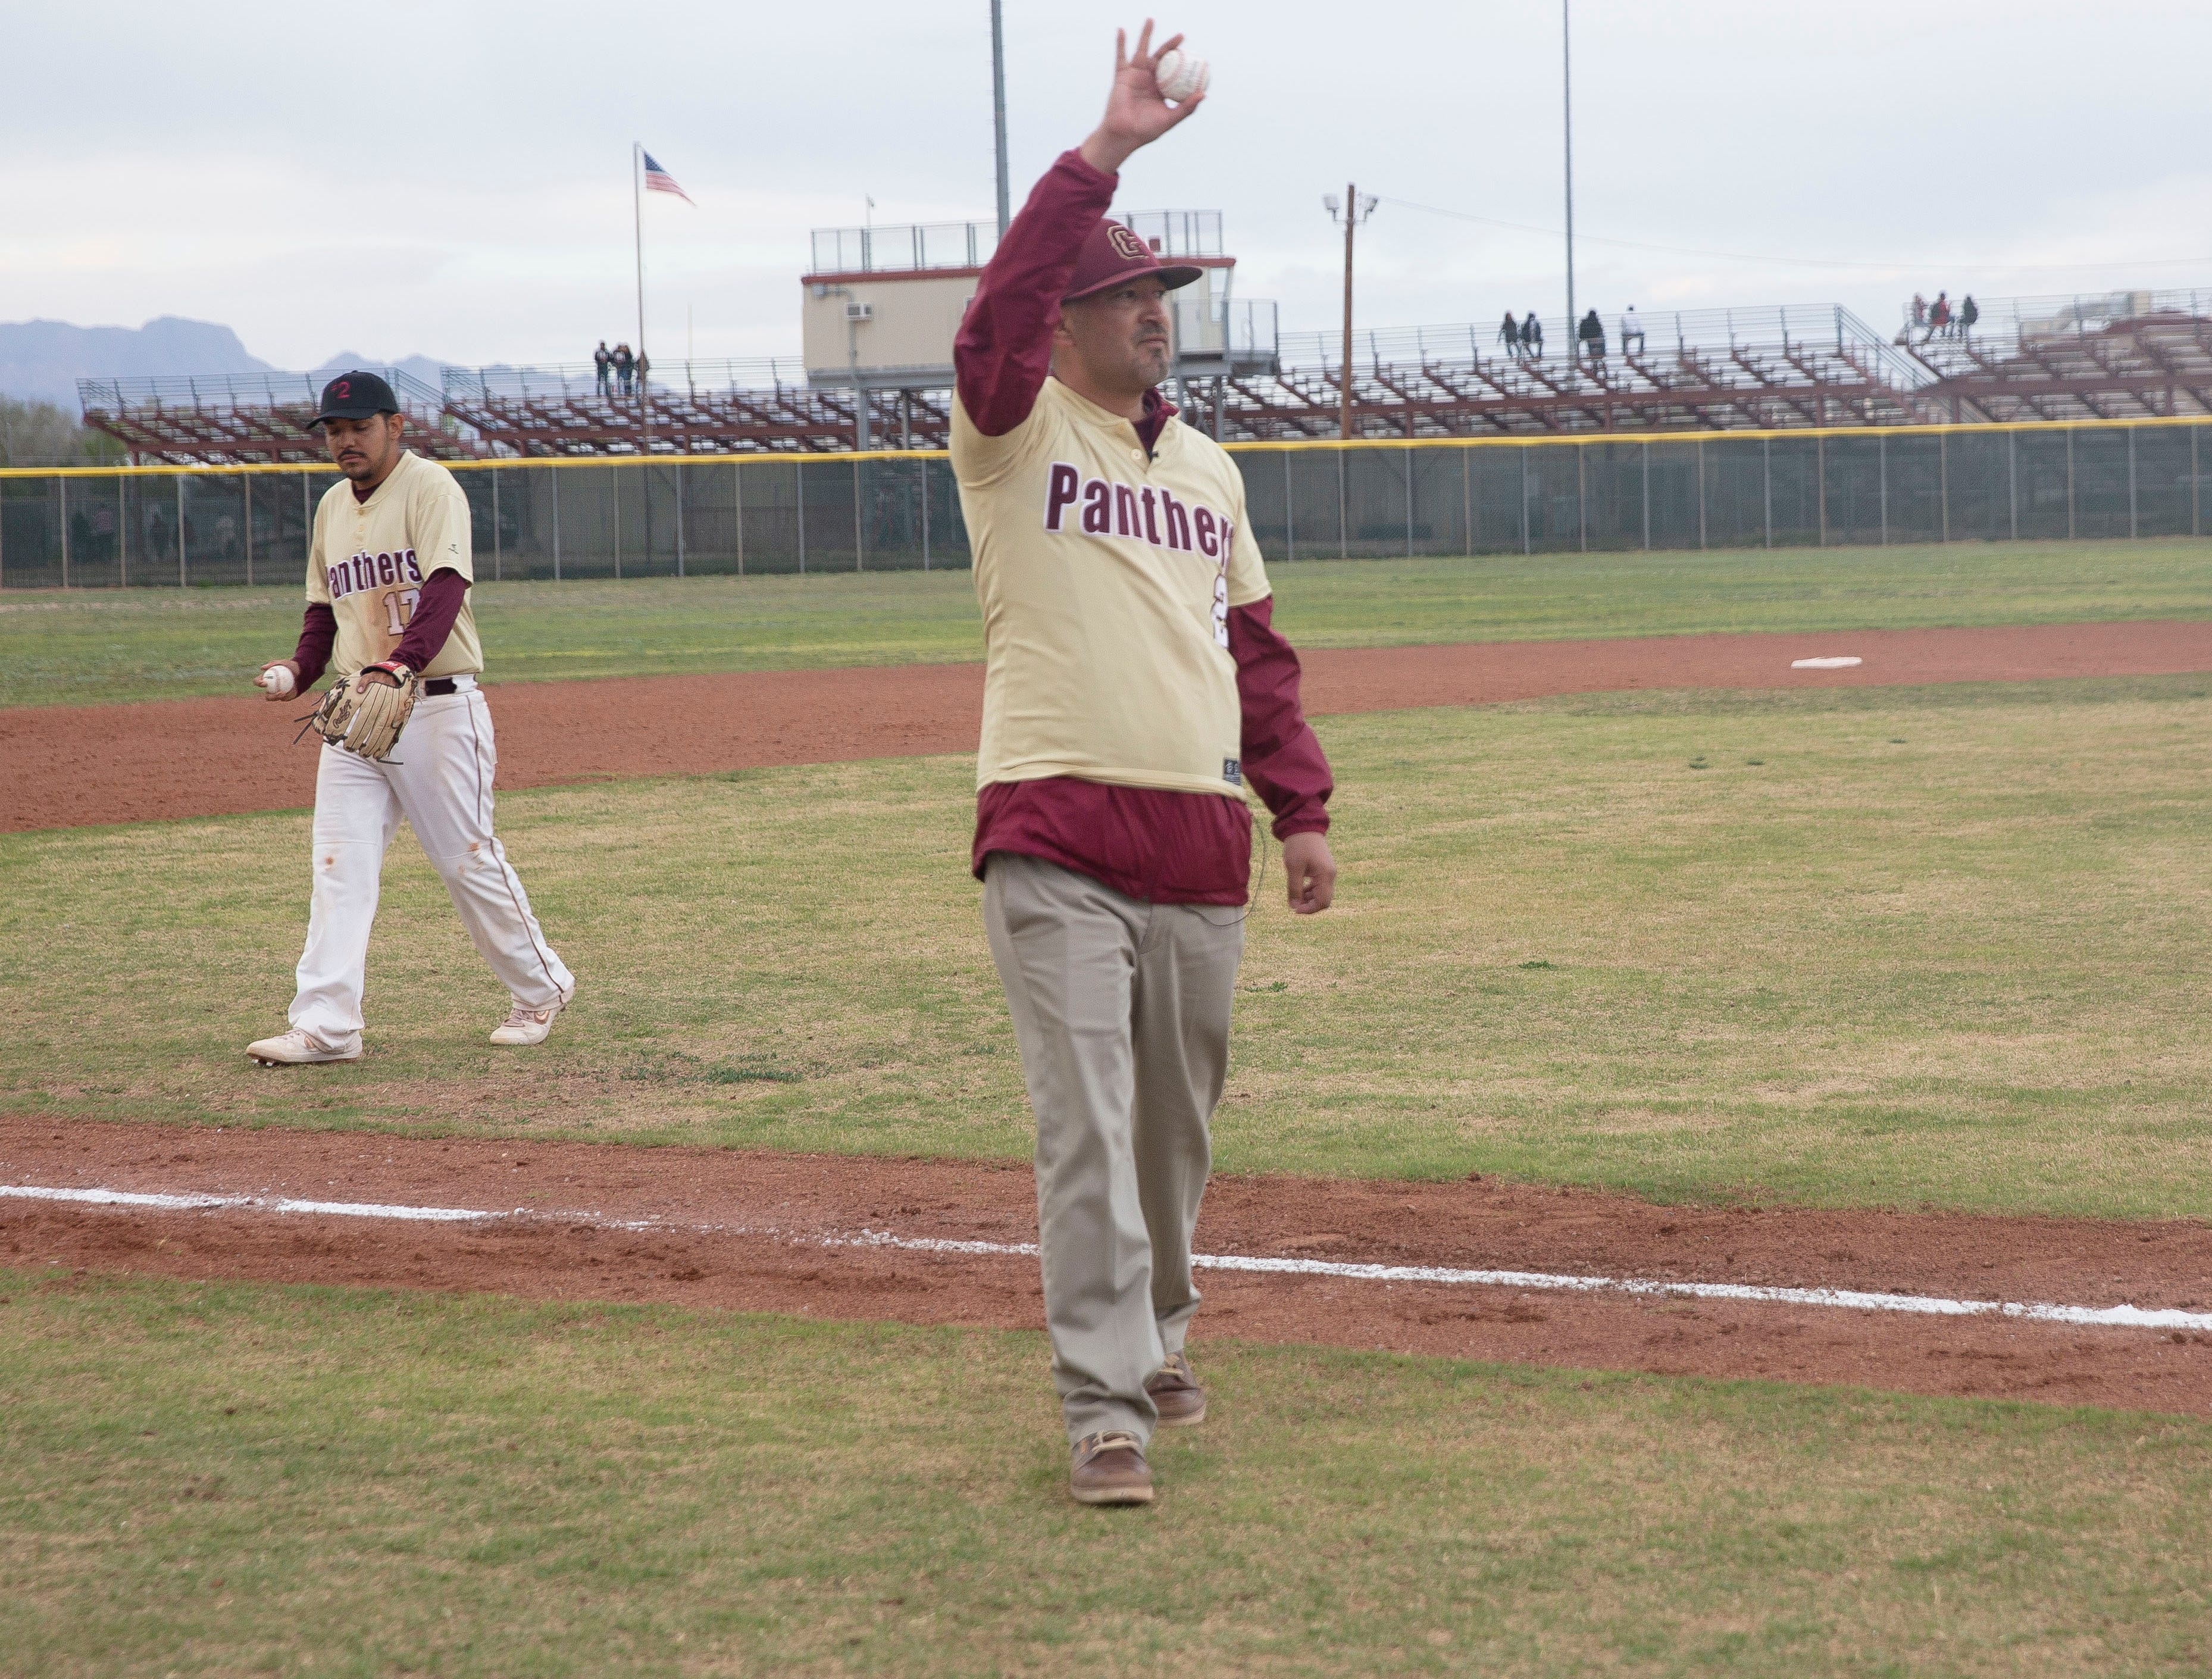 Beto Romero Sr. throws the first pitch at a baseball game at Gadsden High School in Anthony, New Mexico Friday April 5, to honor his son,, Beto Romero Jr., who was killed in a hit-and-run accident earlier this week.